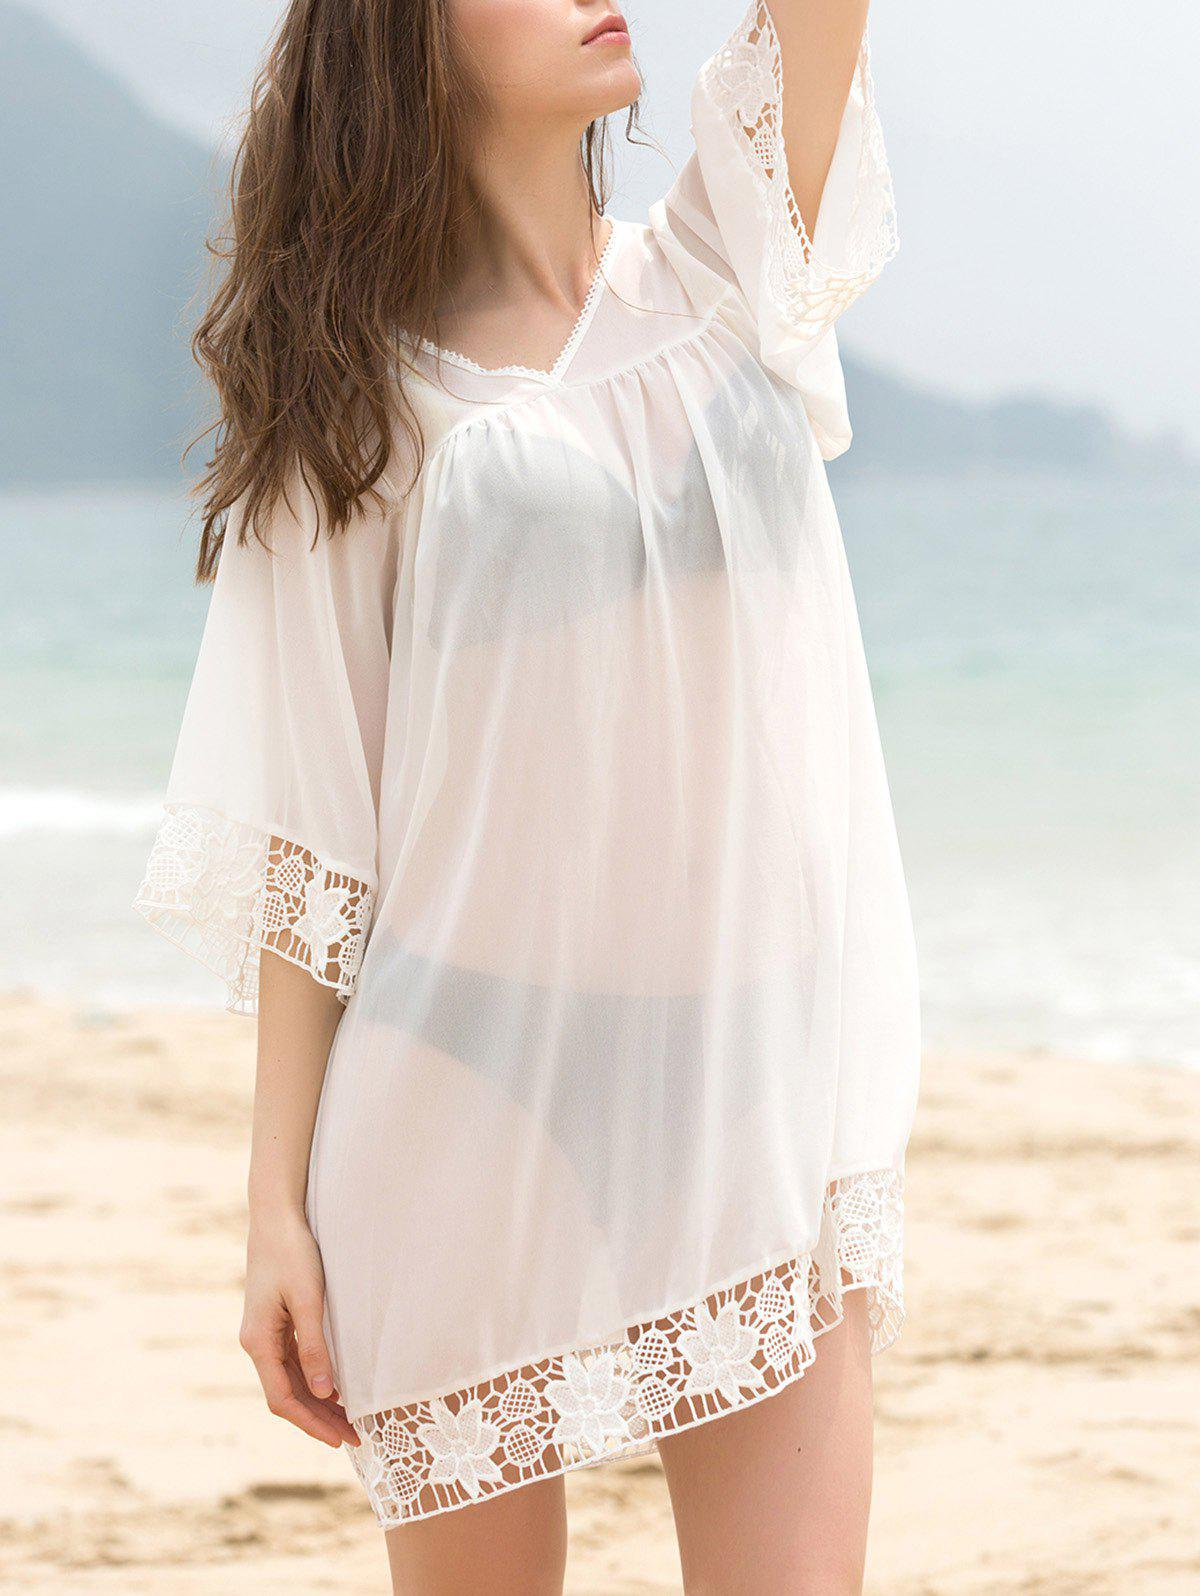 Fashionable Women's V-Neck 3/4 Sleeve Lace Splicing Cover-Up Dress - WHITE ONE SIZE(FIT SIZE XS TO M)